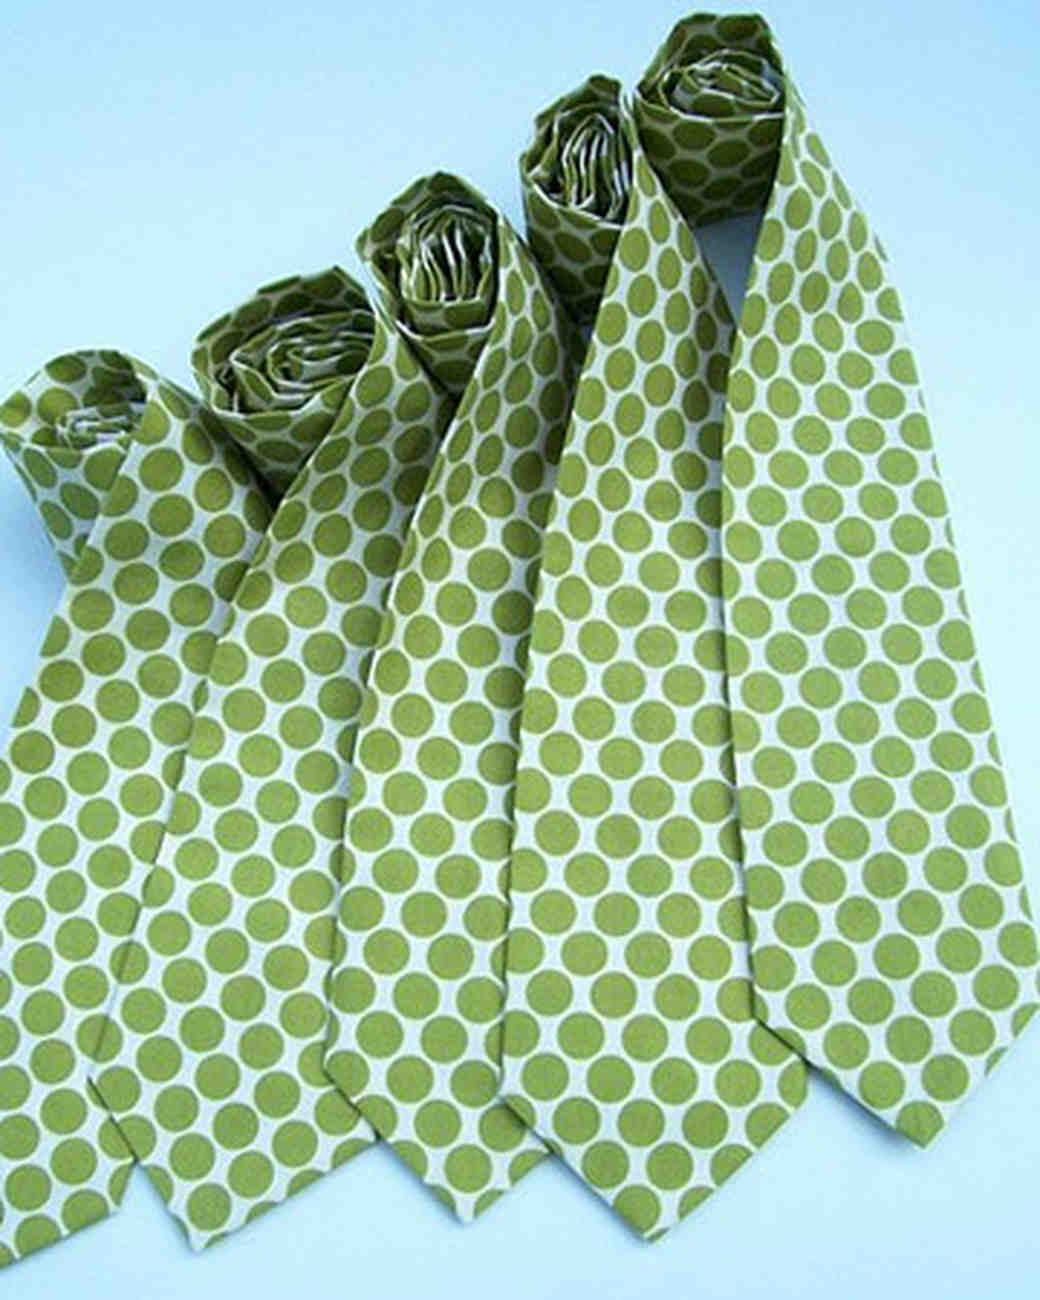 etsy_meandmatilda_green_ties.jpg